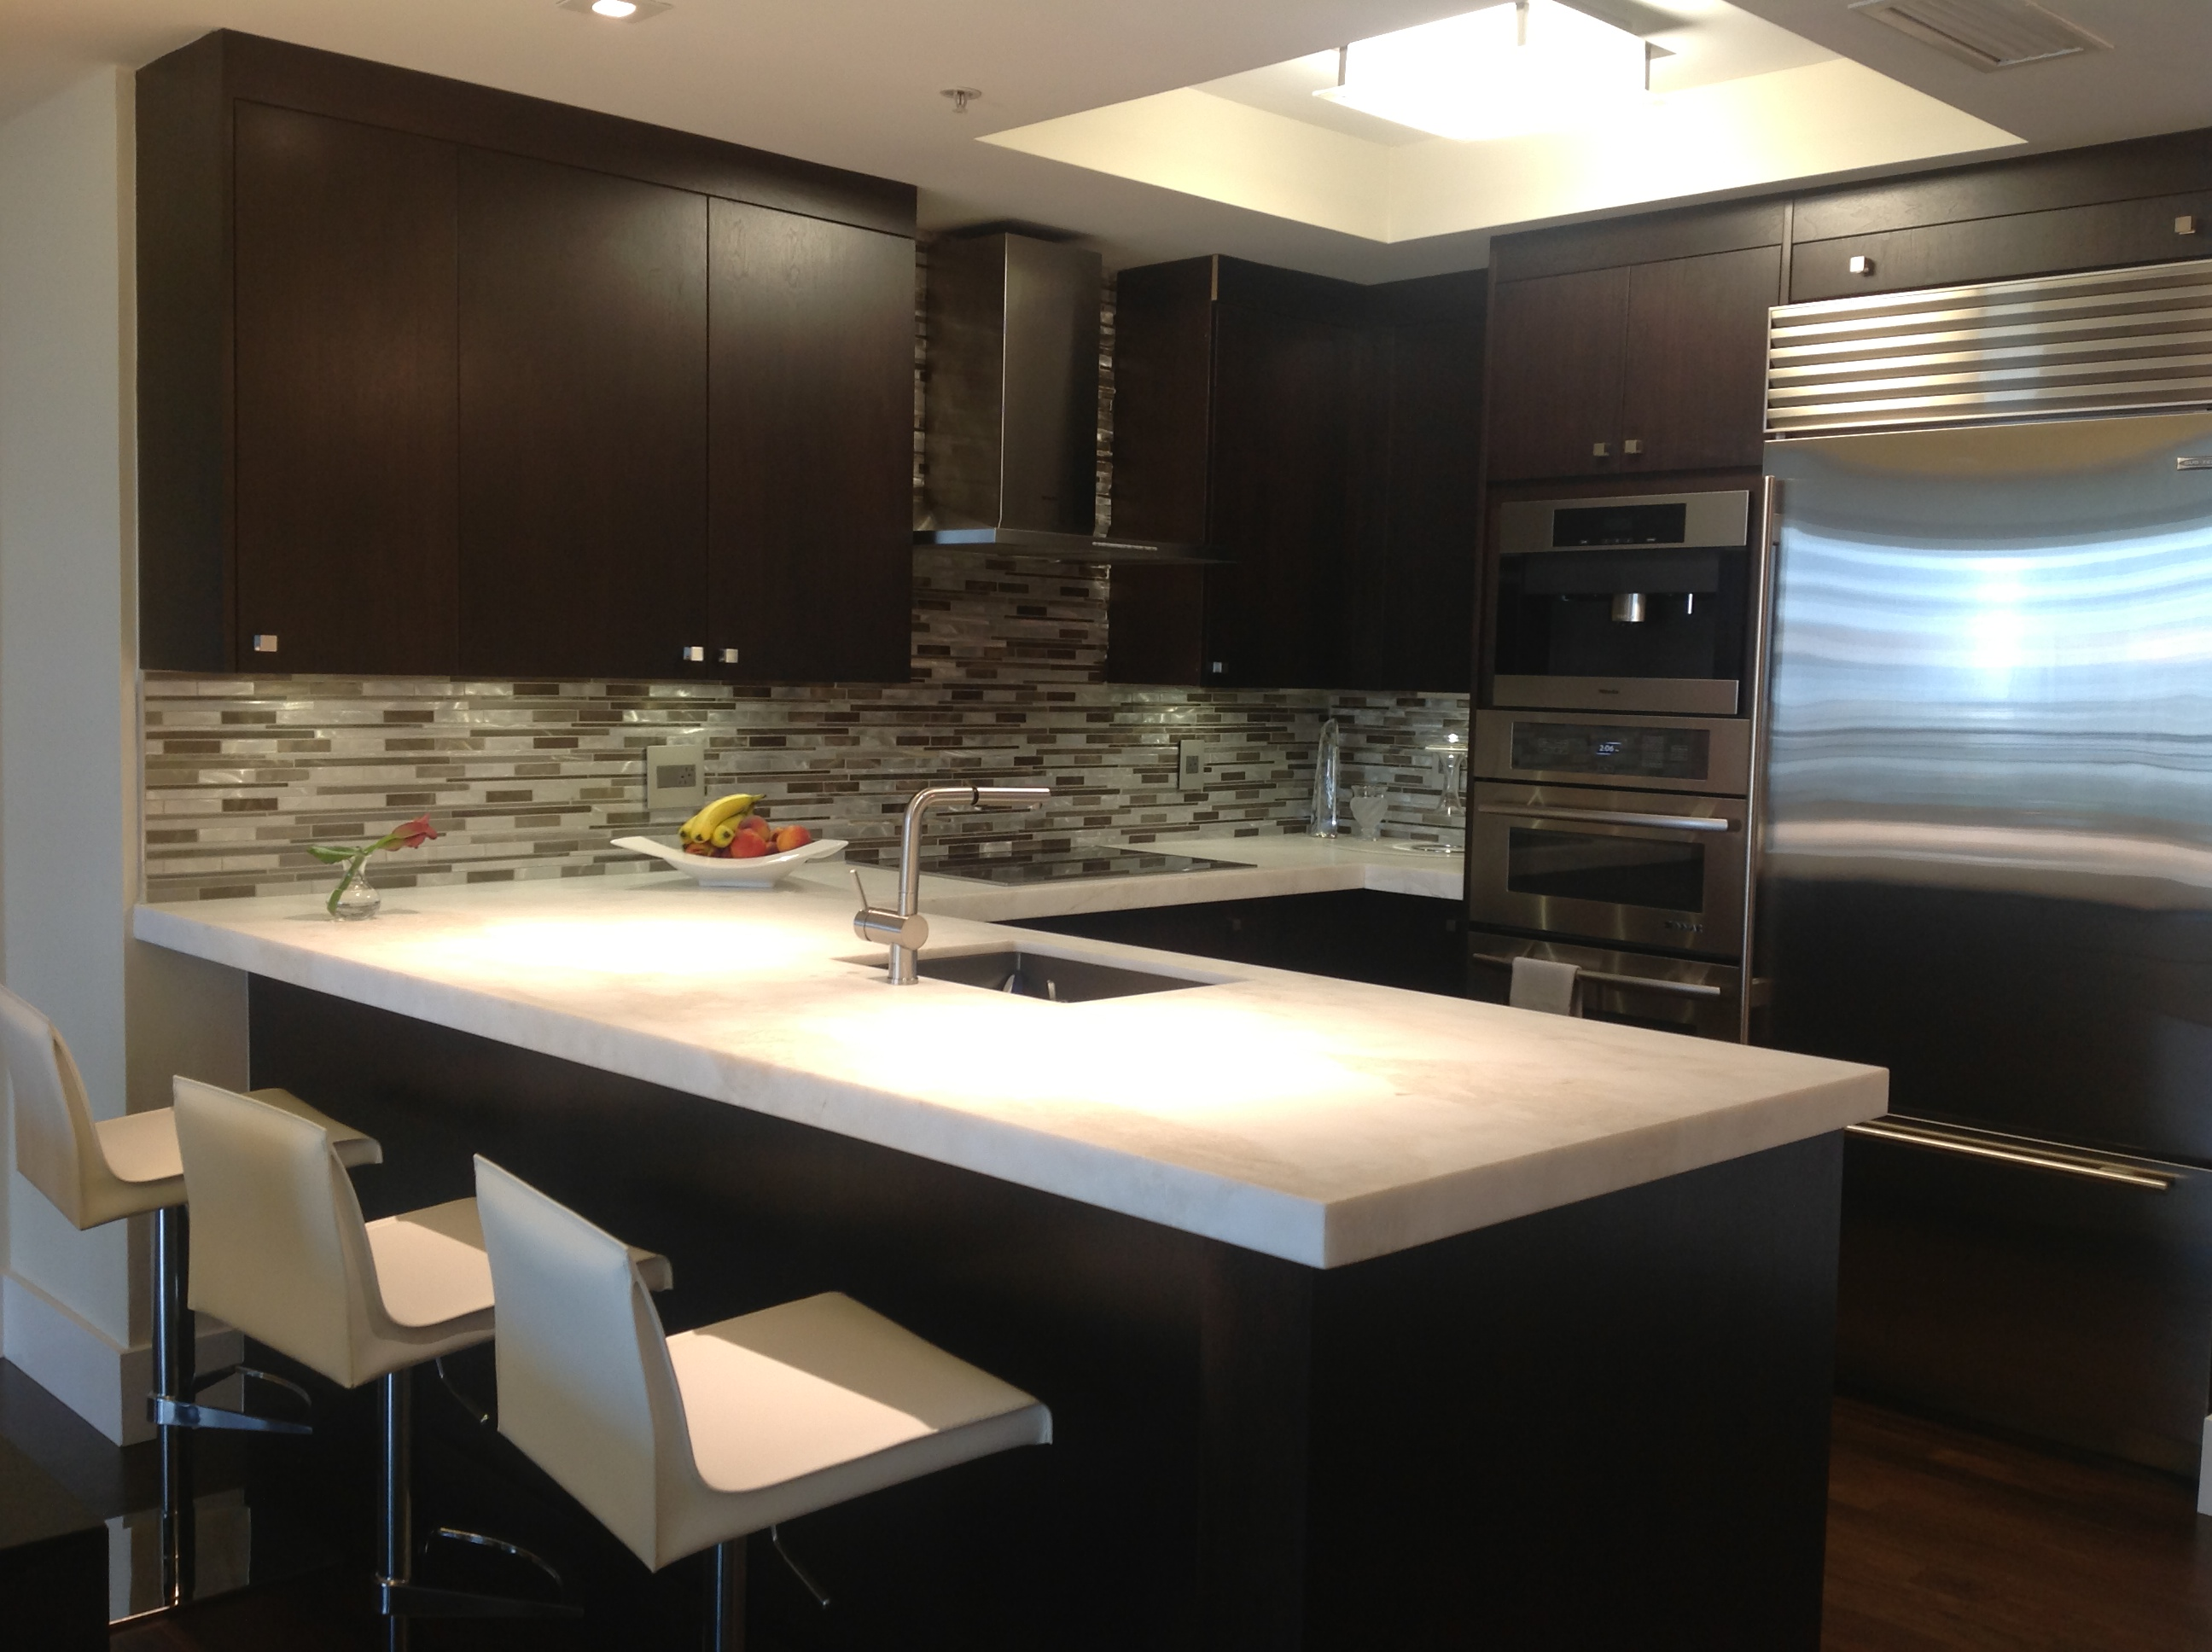 Jandj custom kitchen cabinets company luxurious kitchen for Custom kitchen designer